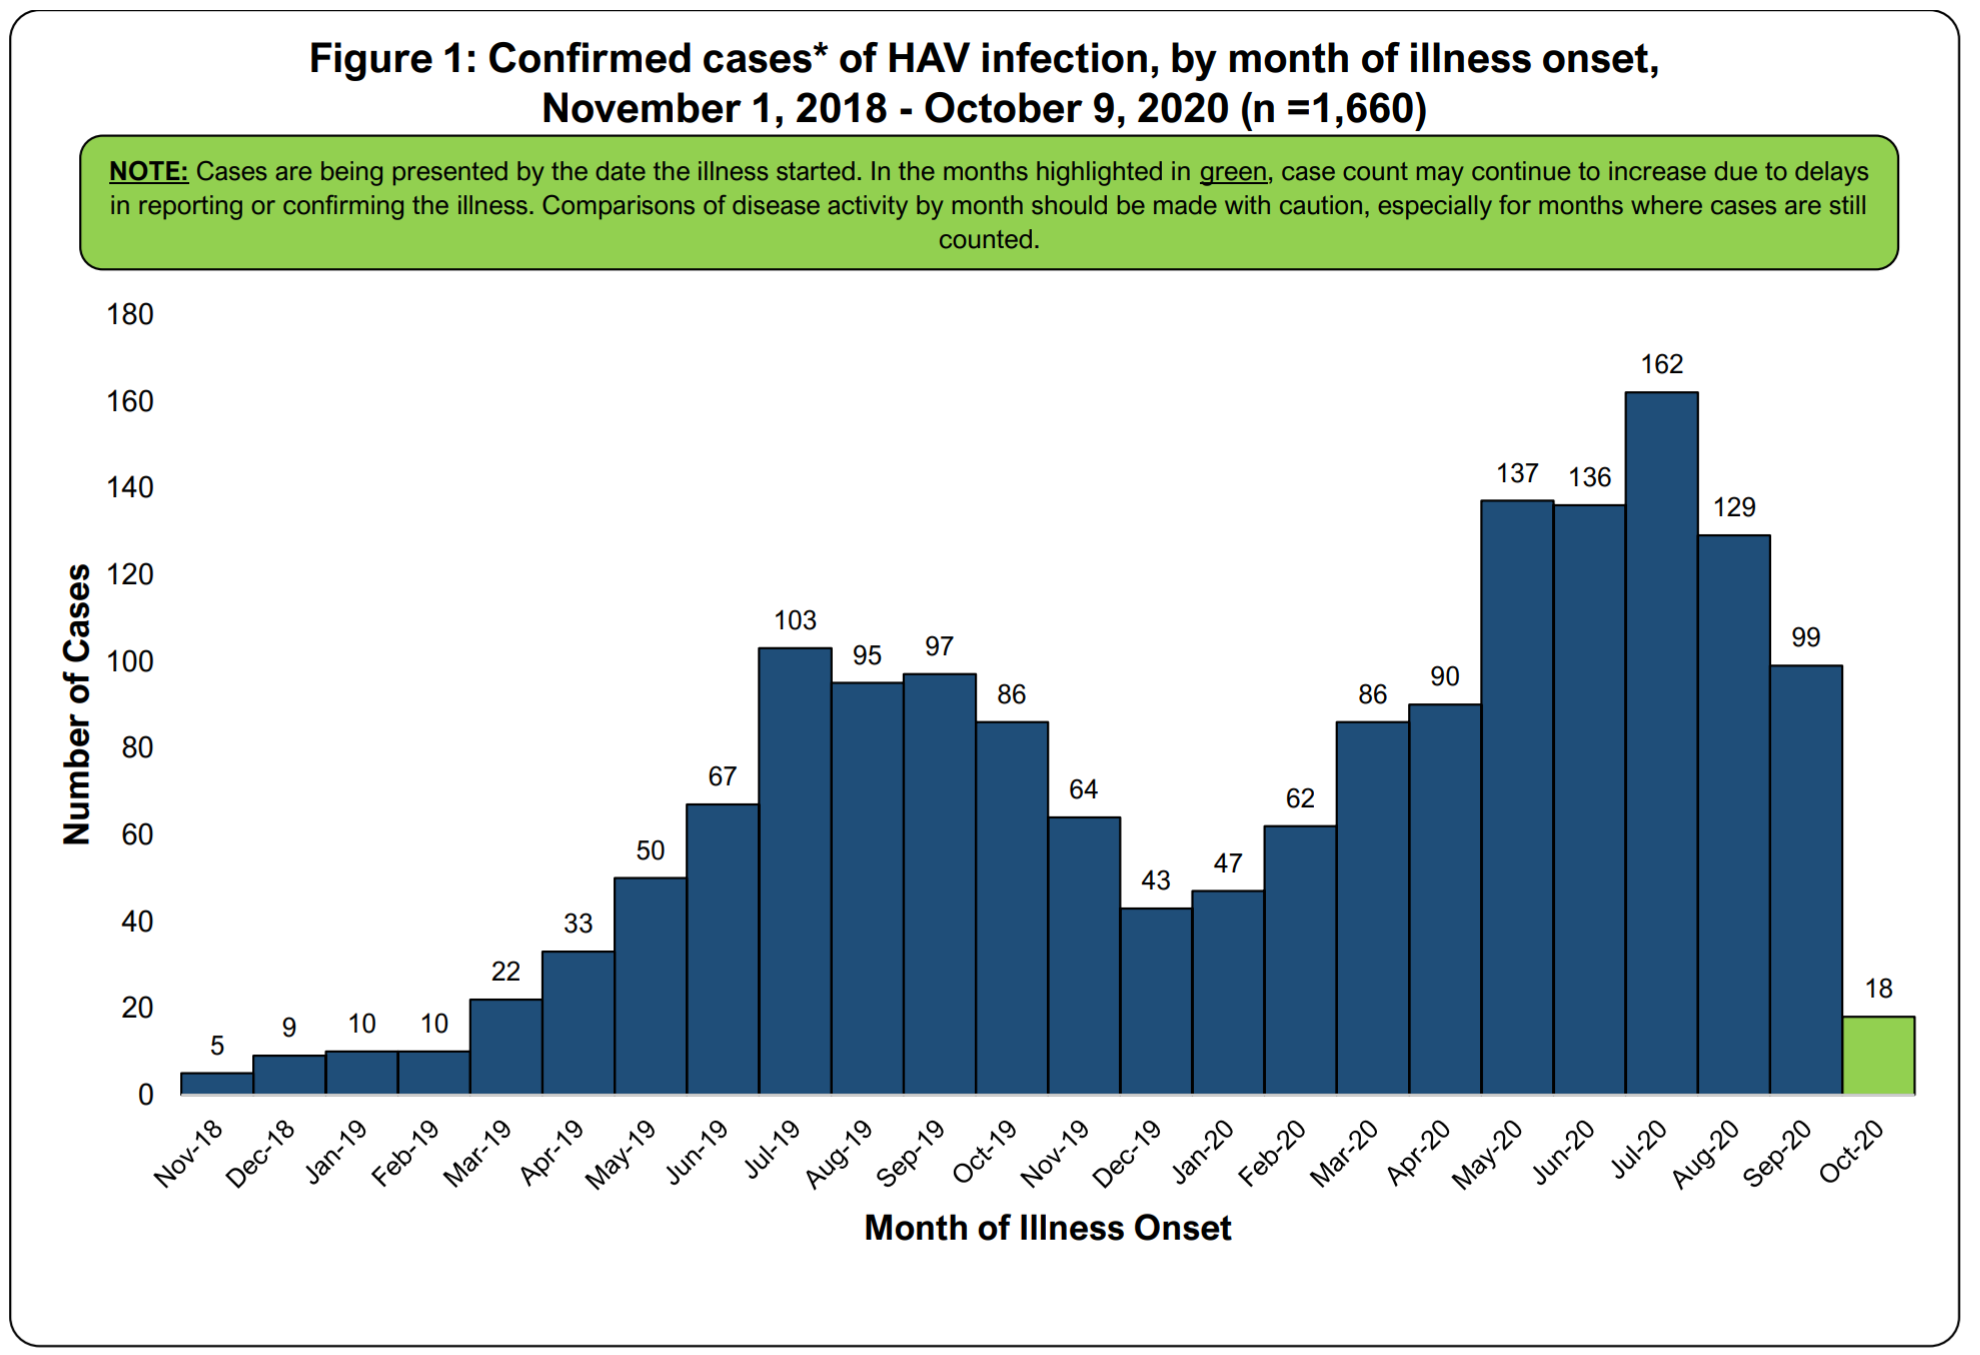 Graph of Confirmed Hepatitis A Cases October 9, 2020